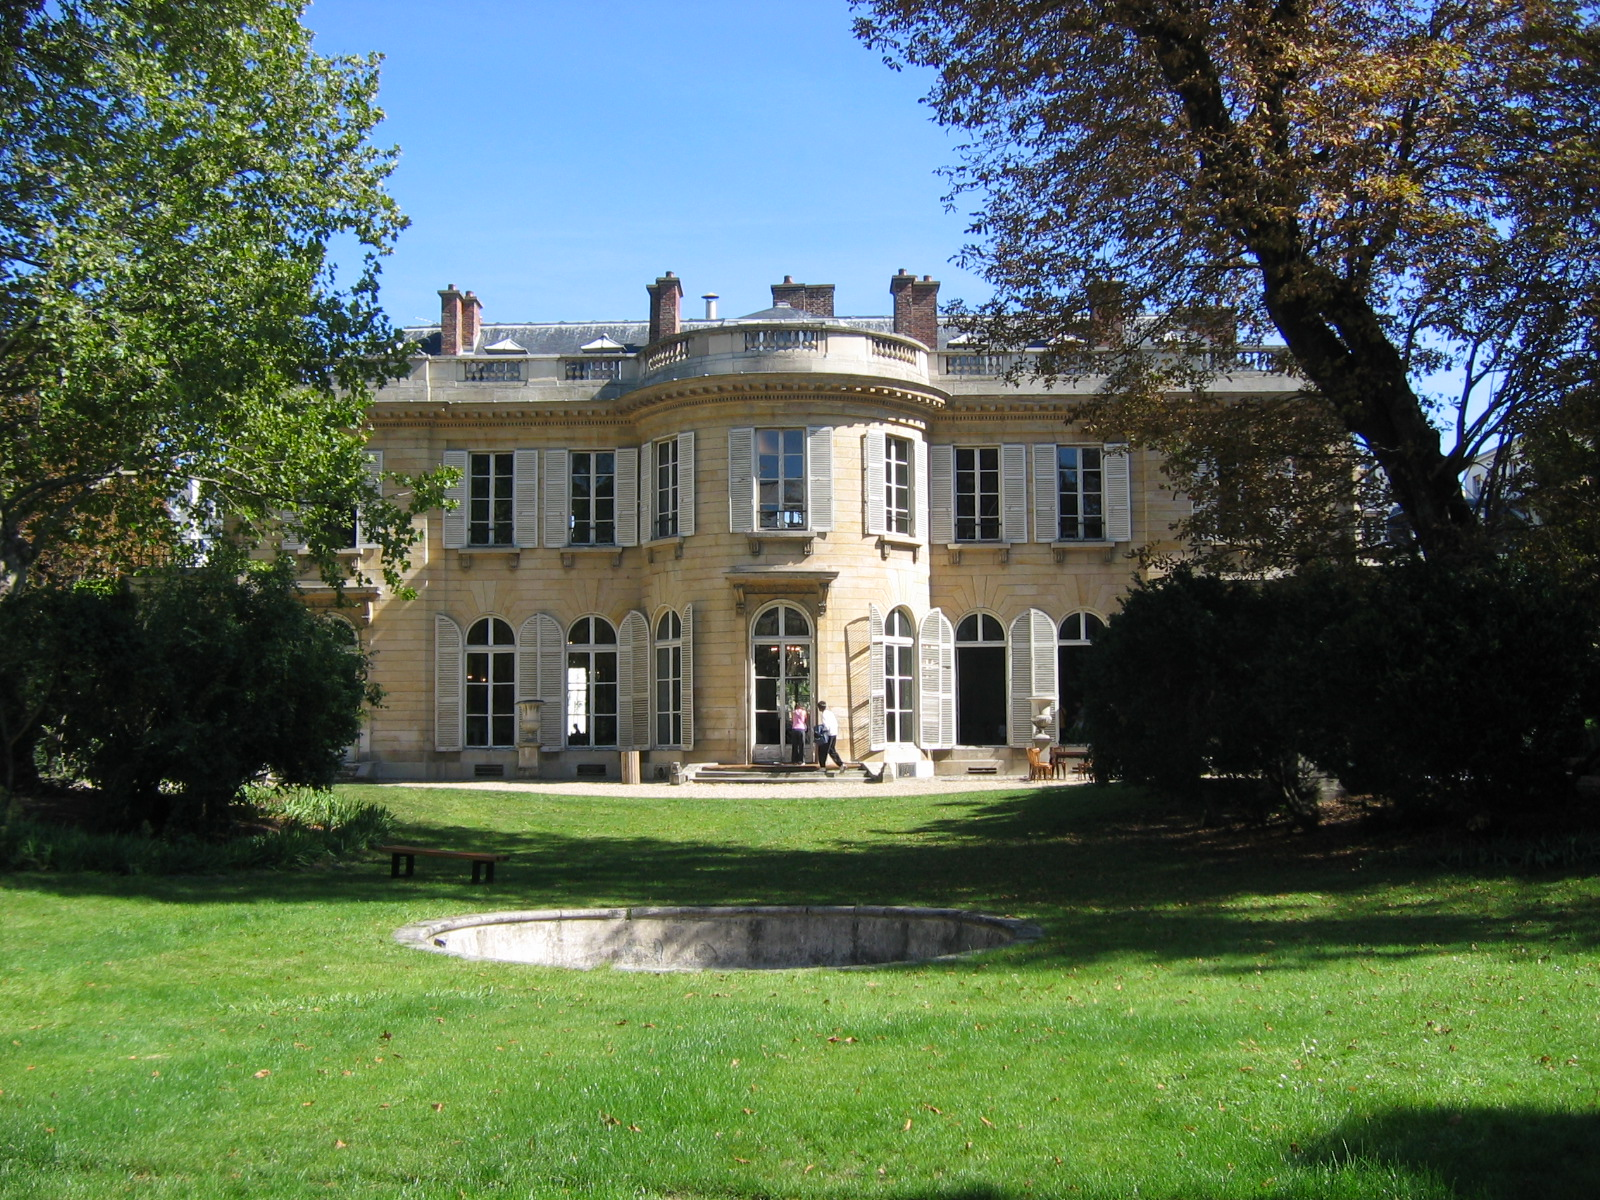 http://upload.wikimedia.org/wikipedia/commons/a/a7/Paris_hotel_bourbon_conde_jardin.jpg